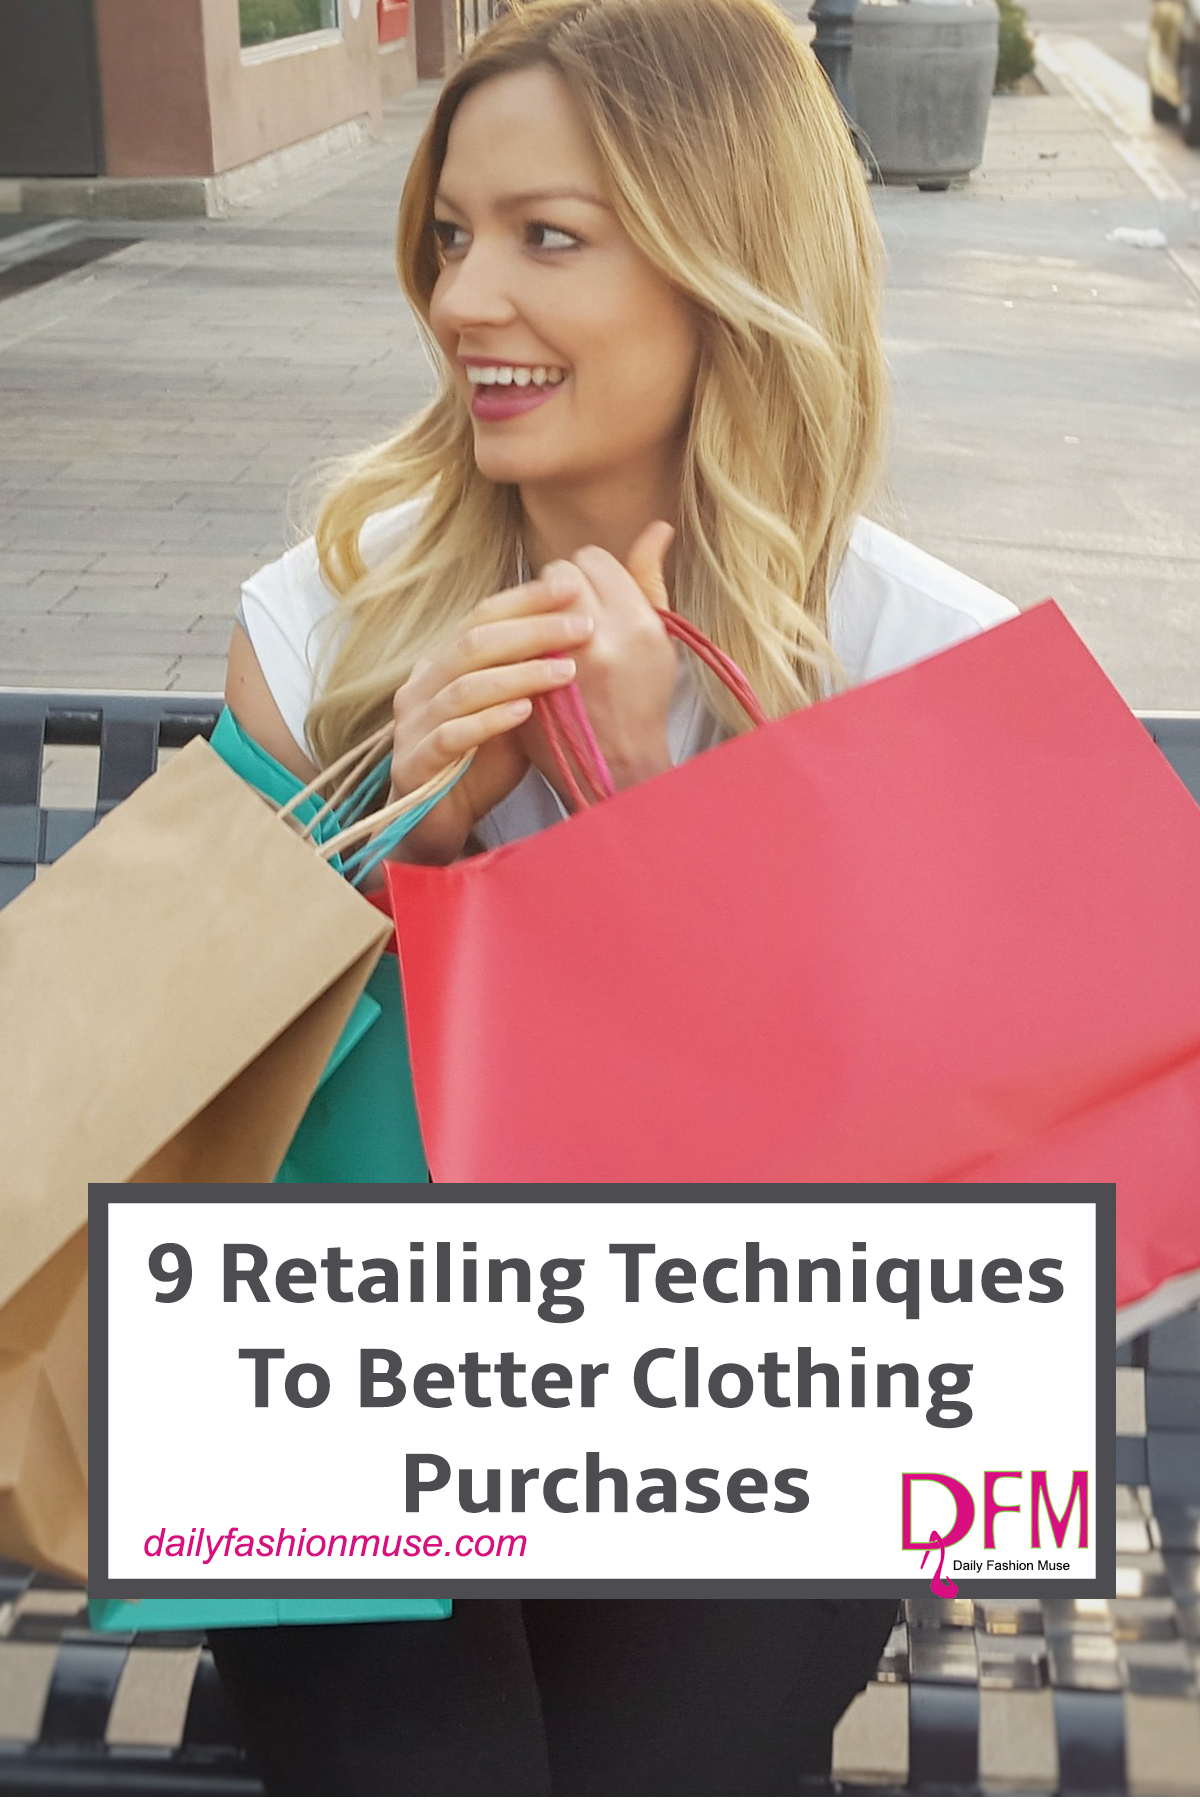 Use these 9 retailing techniques to improve your shopping strategies. Your closet will thank you. Spend less money and love your clothes that much more. Pin for later.